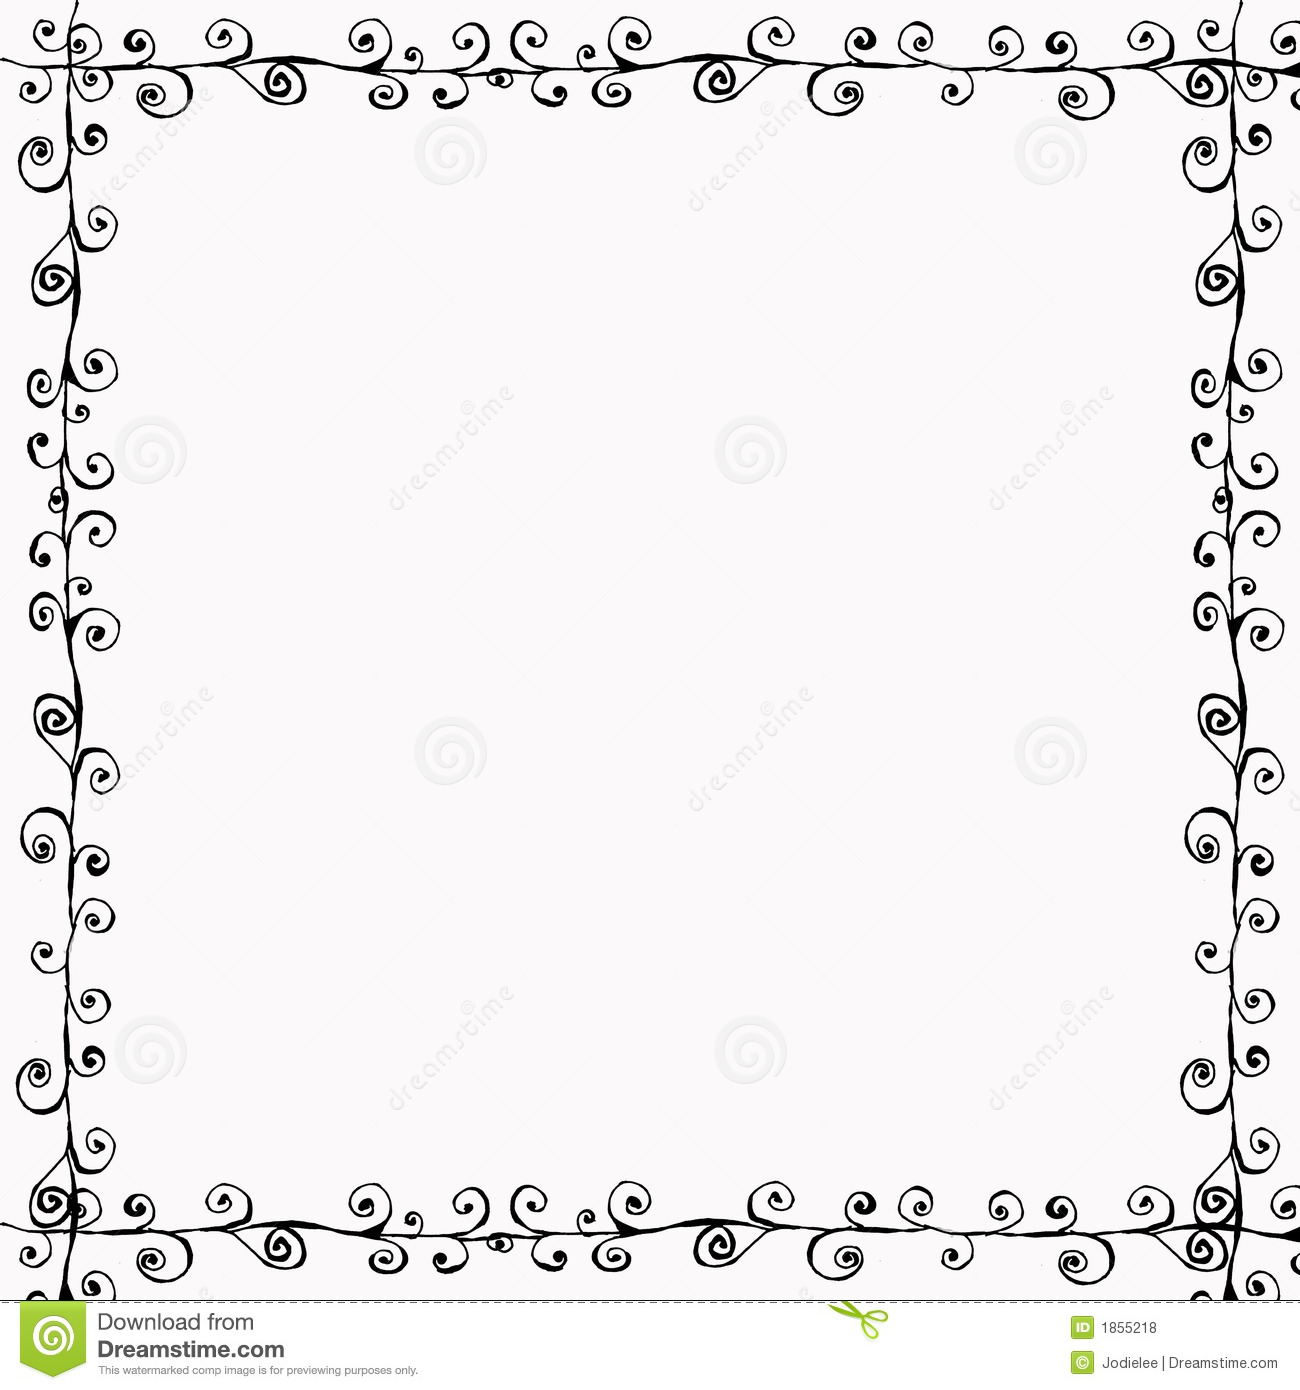 Bohemian Doodle Frame Royalty Free Stock Photos - Image ...